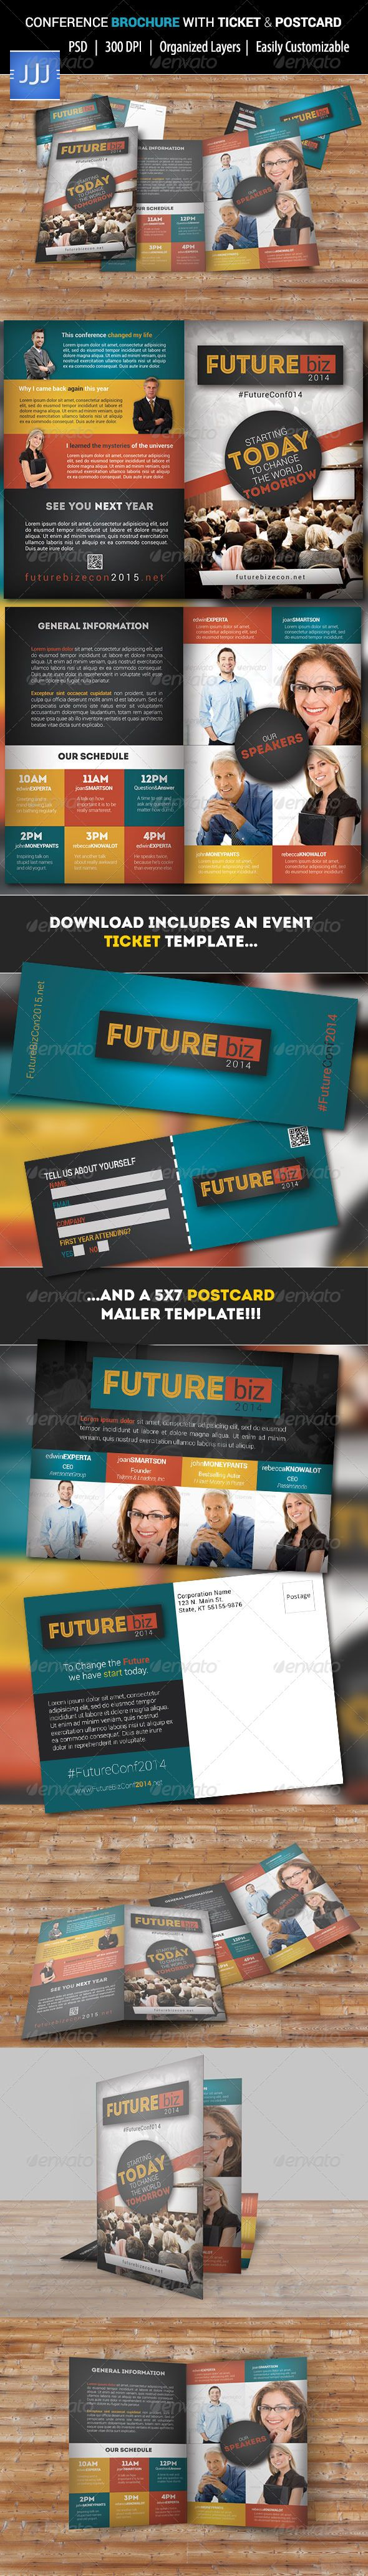 future conference bifold brochure template design download http